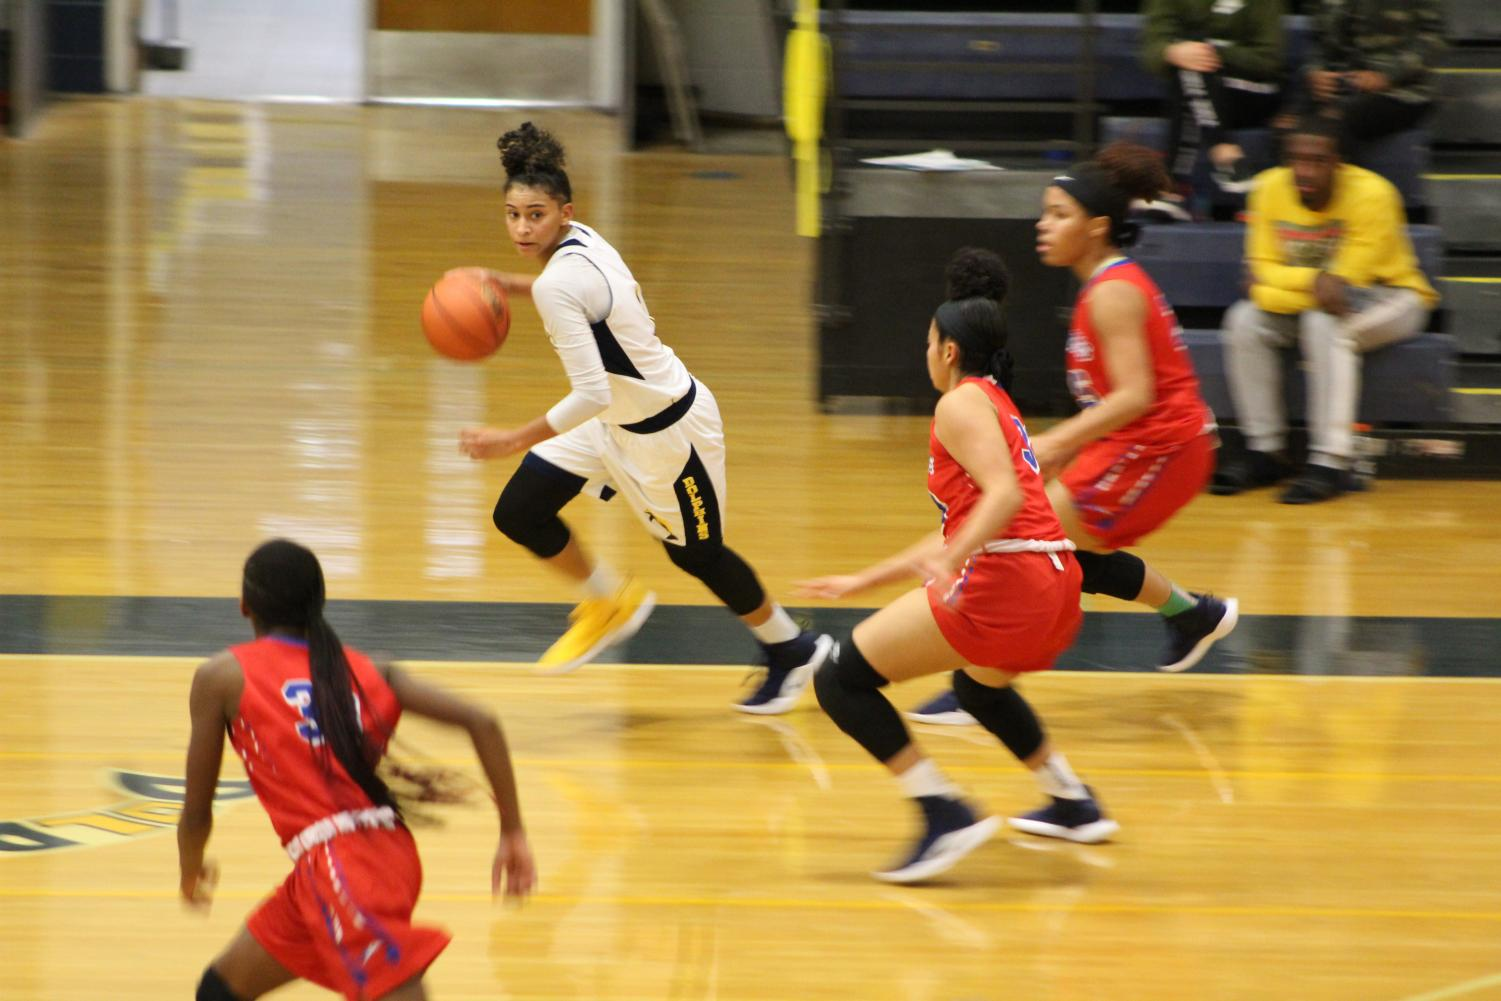 Senior Kyla McMakin dribbles the ball down the court during the teams' game against Princess Anne on Nov. 30.